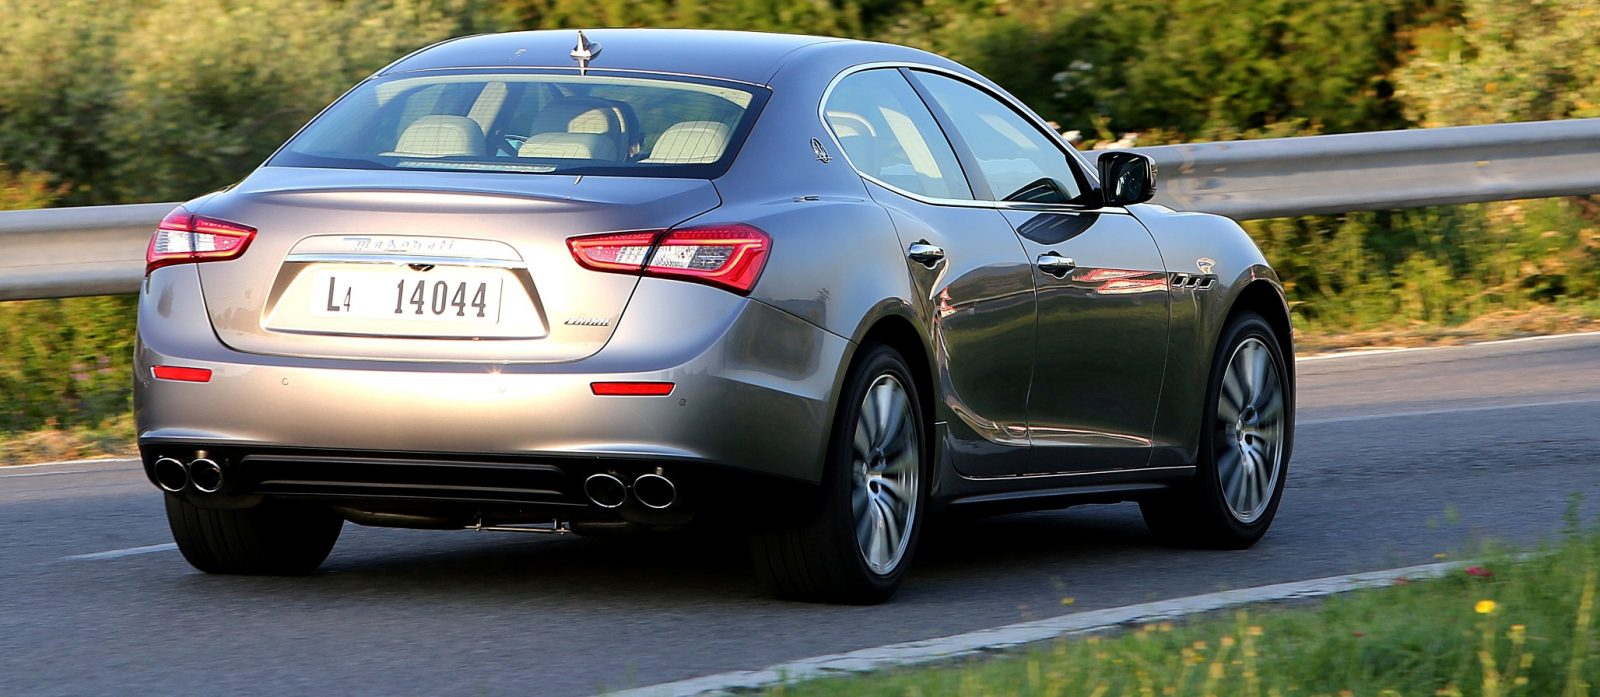 2014 Maserati Ghibli - Latest Official Photos 17